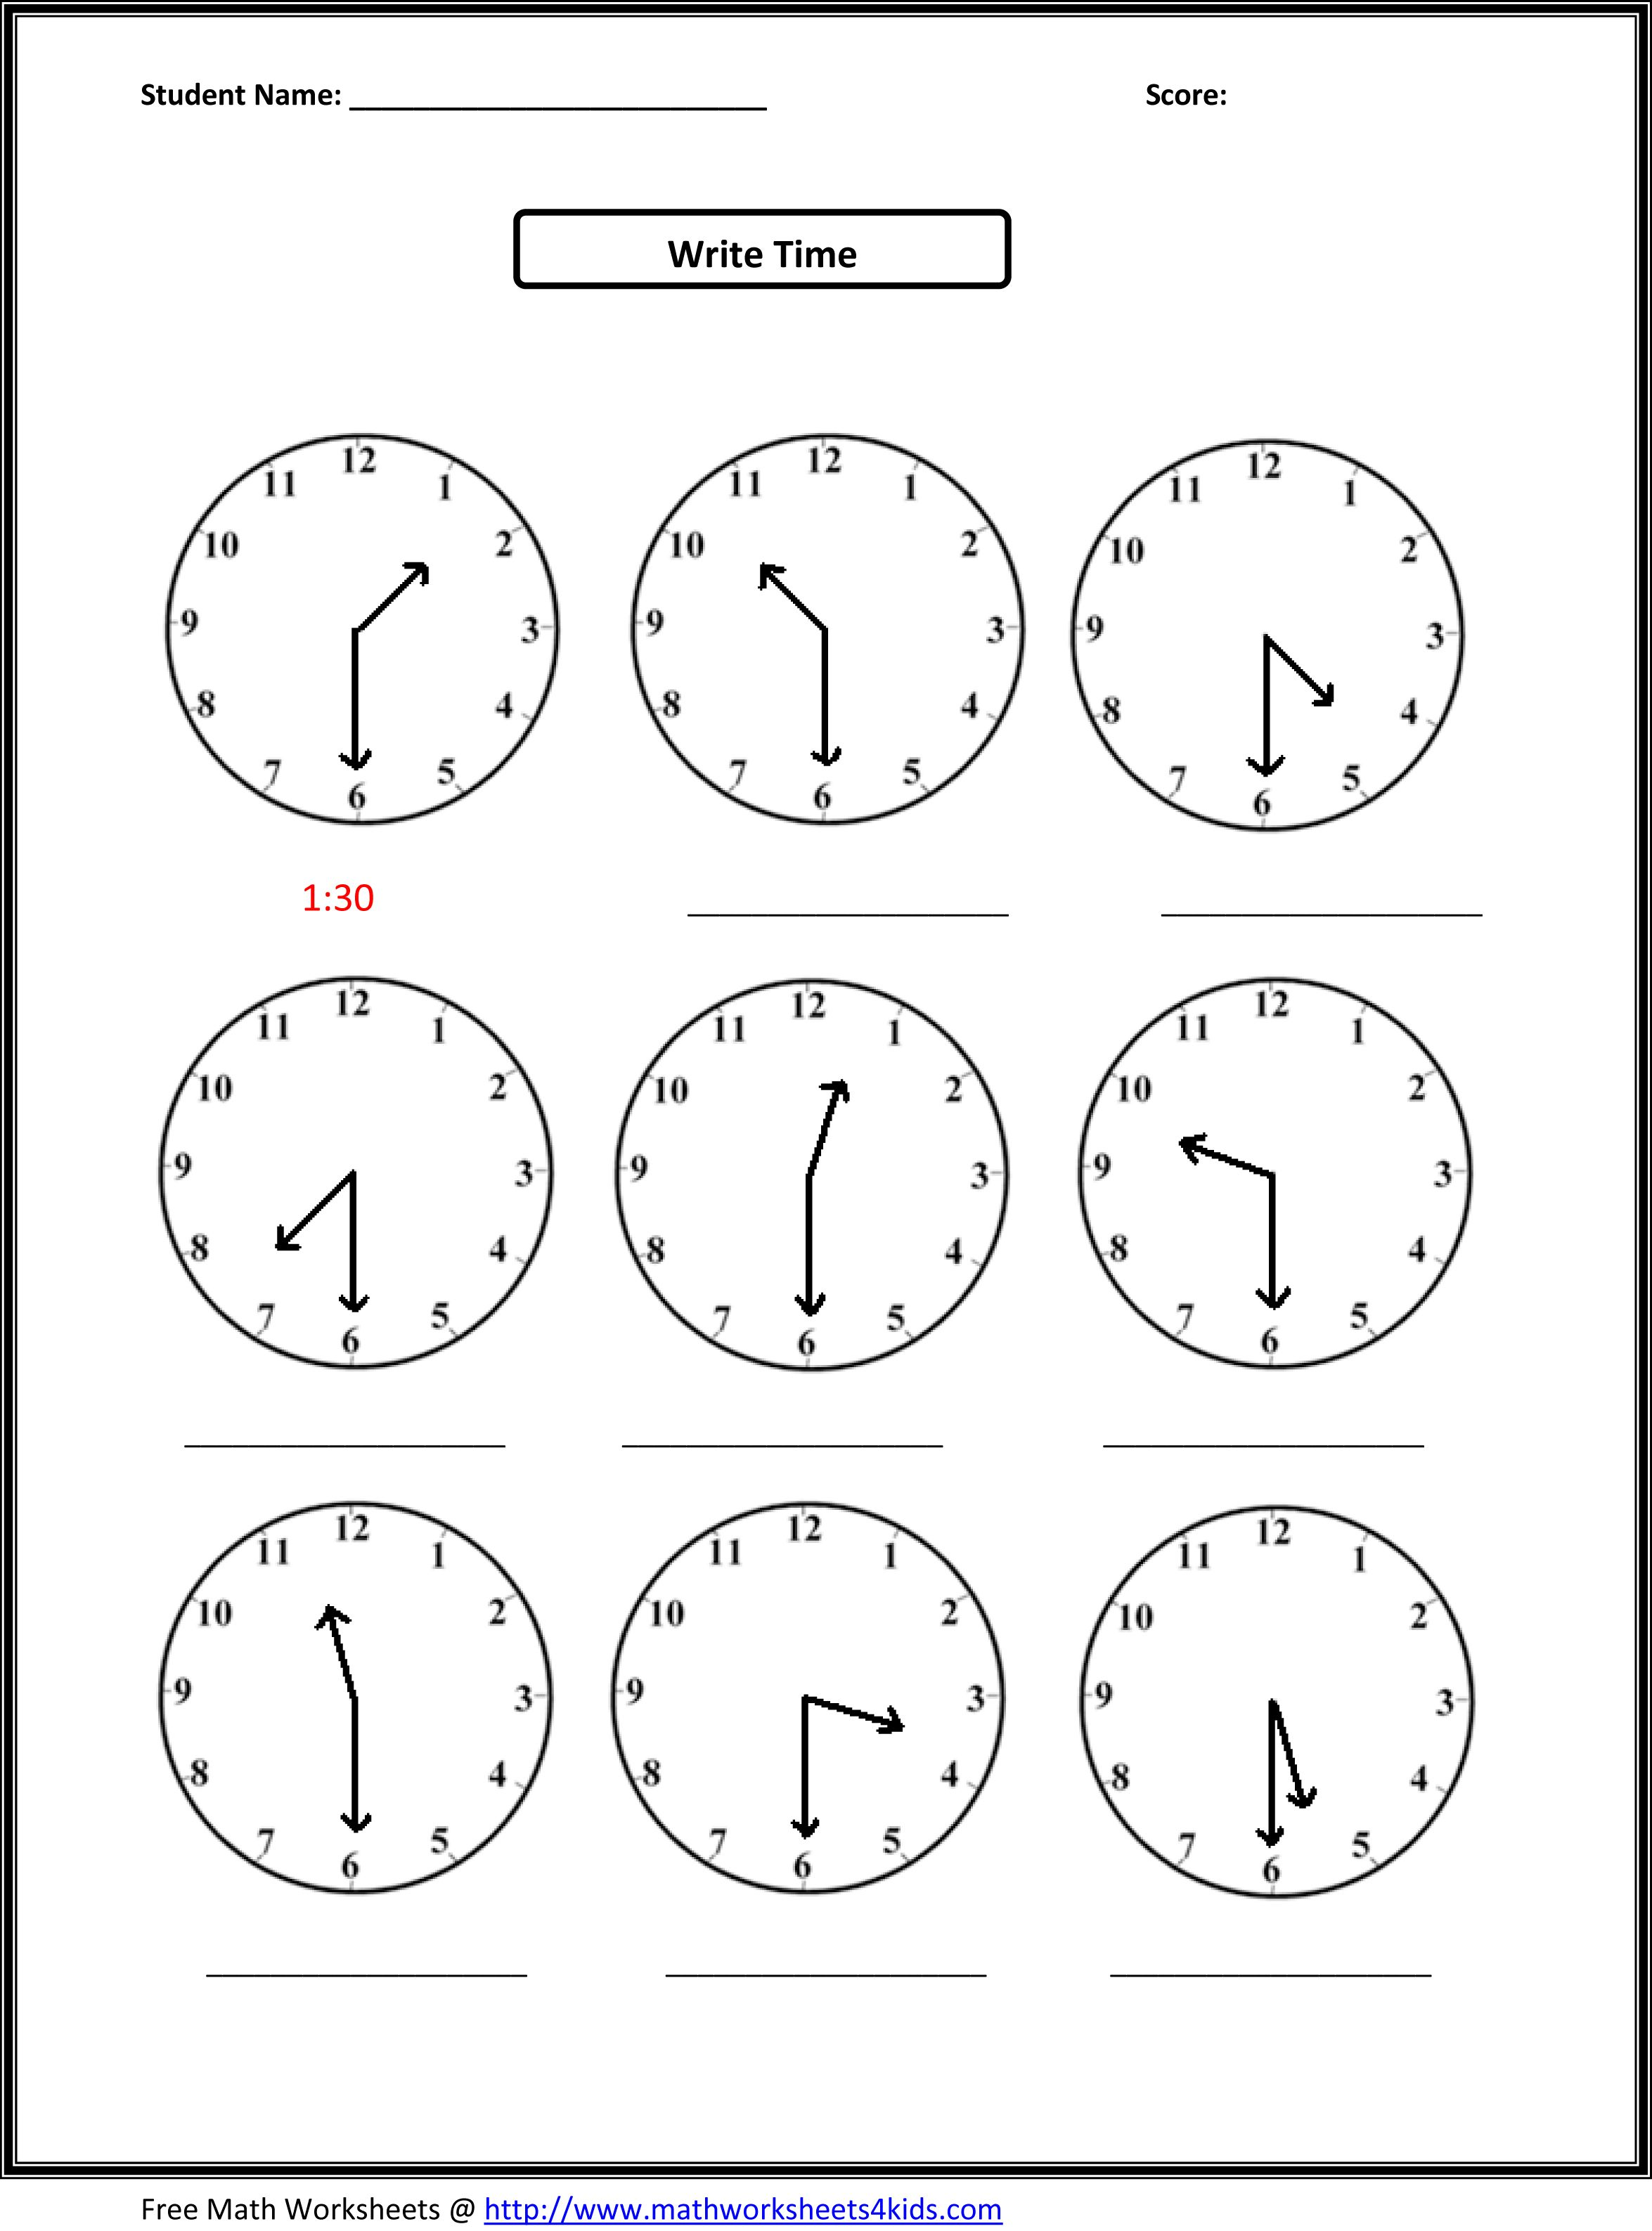 Weirdmailus  Terrific Worksheet On Time For Grade   Reocurent With Licious Free Printable Telling Time Worksheets Nd Grade  Reocurent With Easy On The Eye Choose My Plate Worksheets Also Igh Worksheet In Addition Numbers Worksheet Preschool And Learning Multiplication Tables Worksheets As Well As Complete The Sentence Worksheets Additionally Mean Median Mode Range Worksheets Th Grade From Reocurentcom With Weirdmailus  Licious Worksheet On Time For Grade   Reocurent With Easy On The Eye Free Printable Telling Time Worksheets Nd Grade  Reocurent And Terrific Choose My Plate Worksheets Also Igh Worksheet In Addition Numbers Worksheet Preschool From Reocurentcom